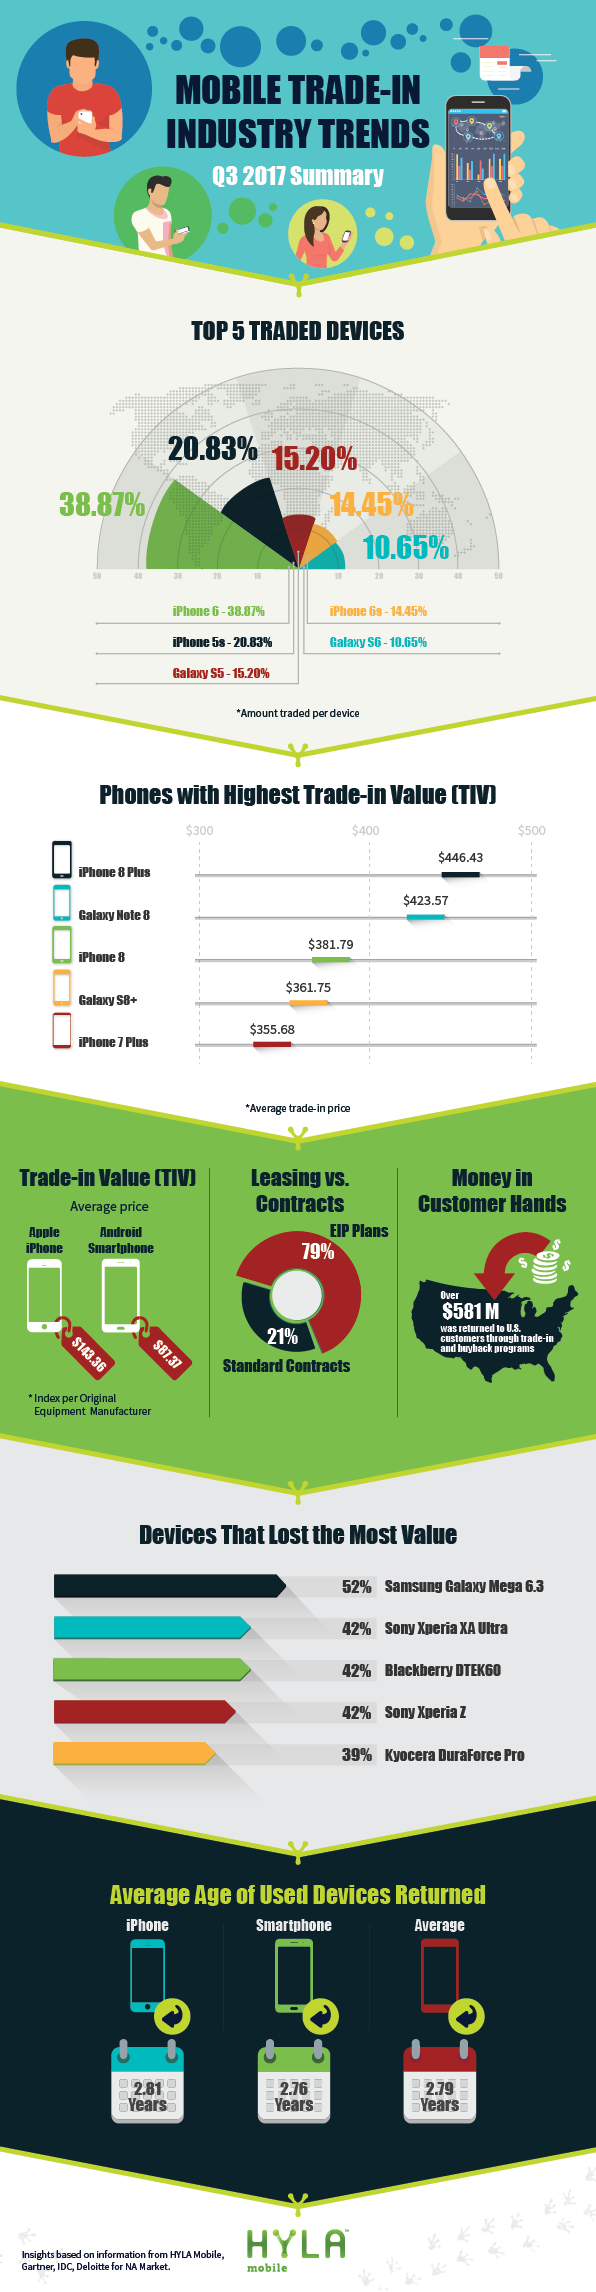 Mobile Trade-in industry trends Q3 2017 Summary Infographic with details on trade in data.